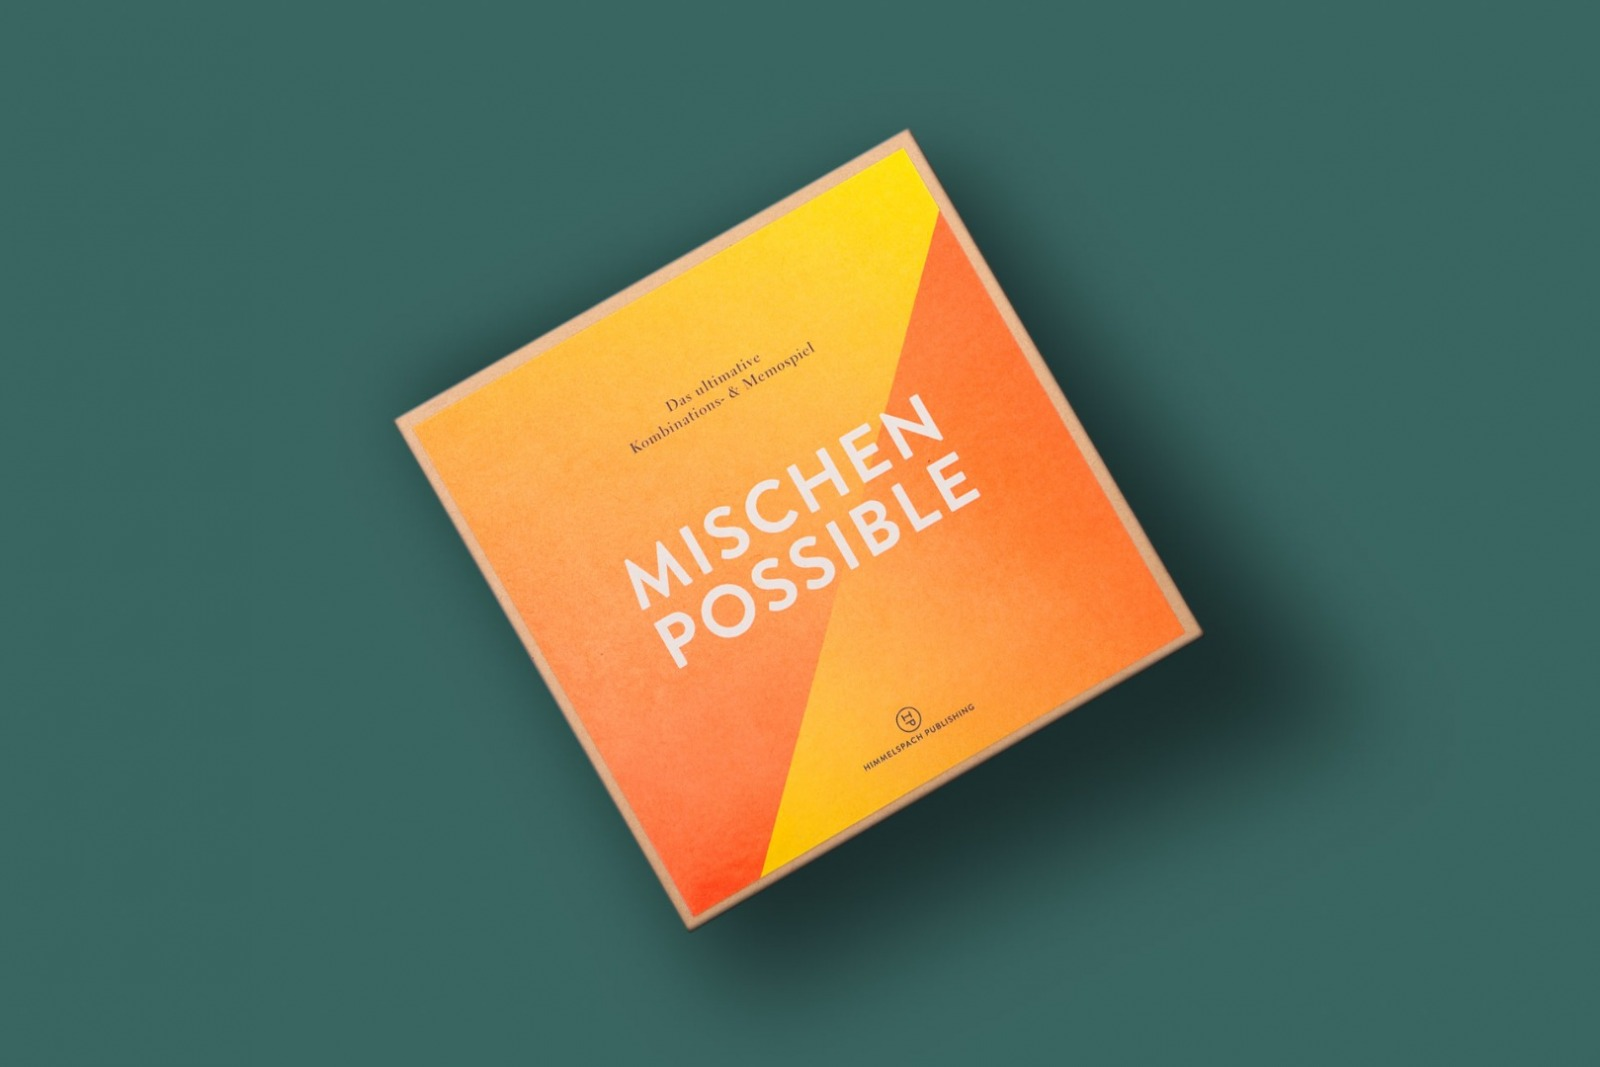 MISCHEN POSSIBLE